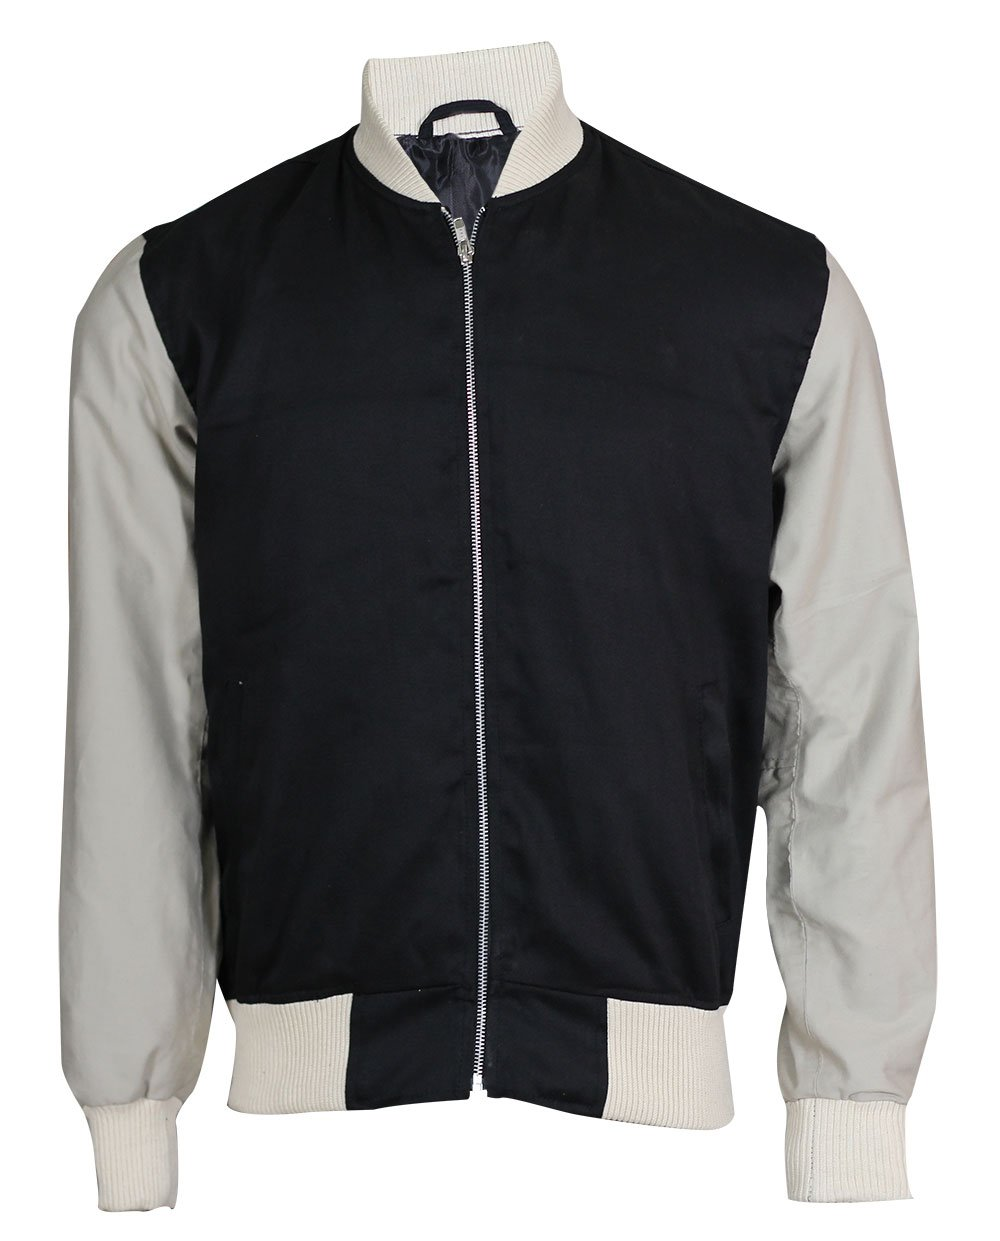 Baby Driver Jacket Ansel Elgort Baby Varsity Bomber Jacket by LP-FACON